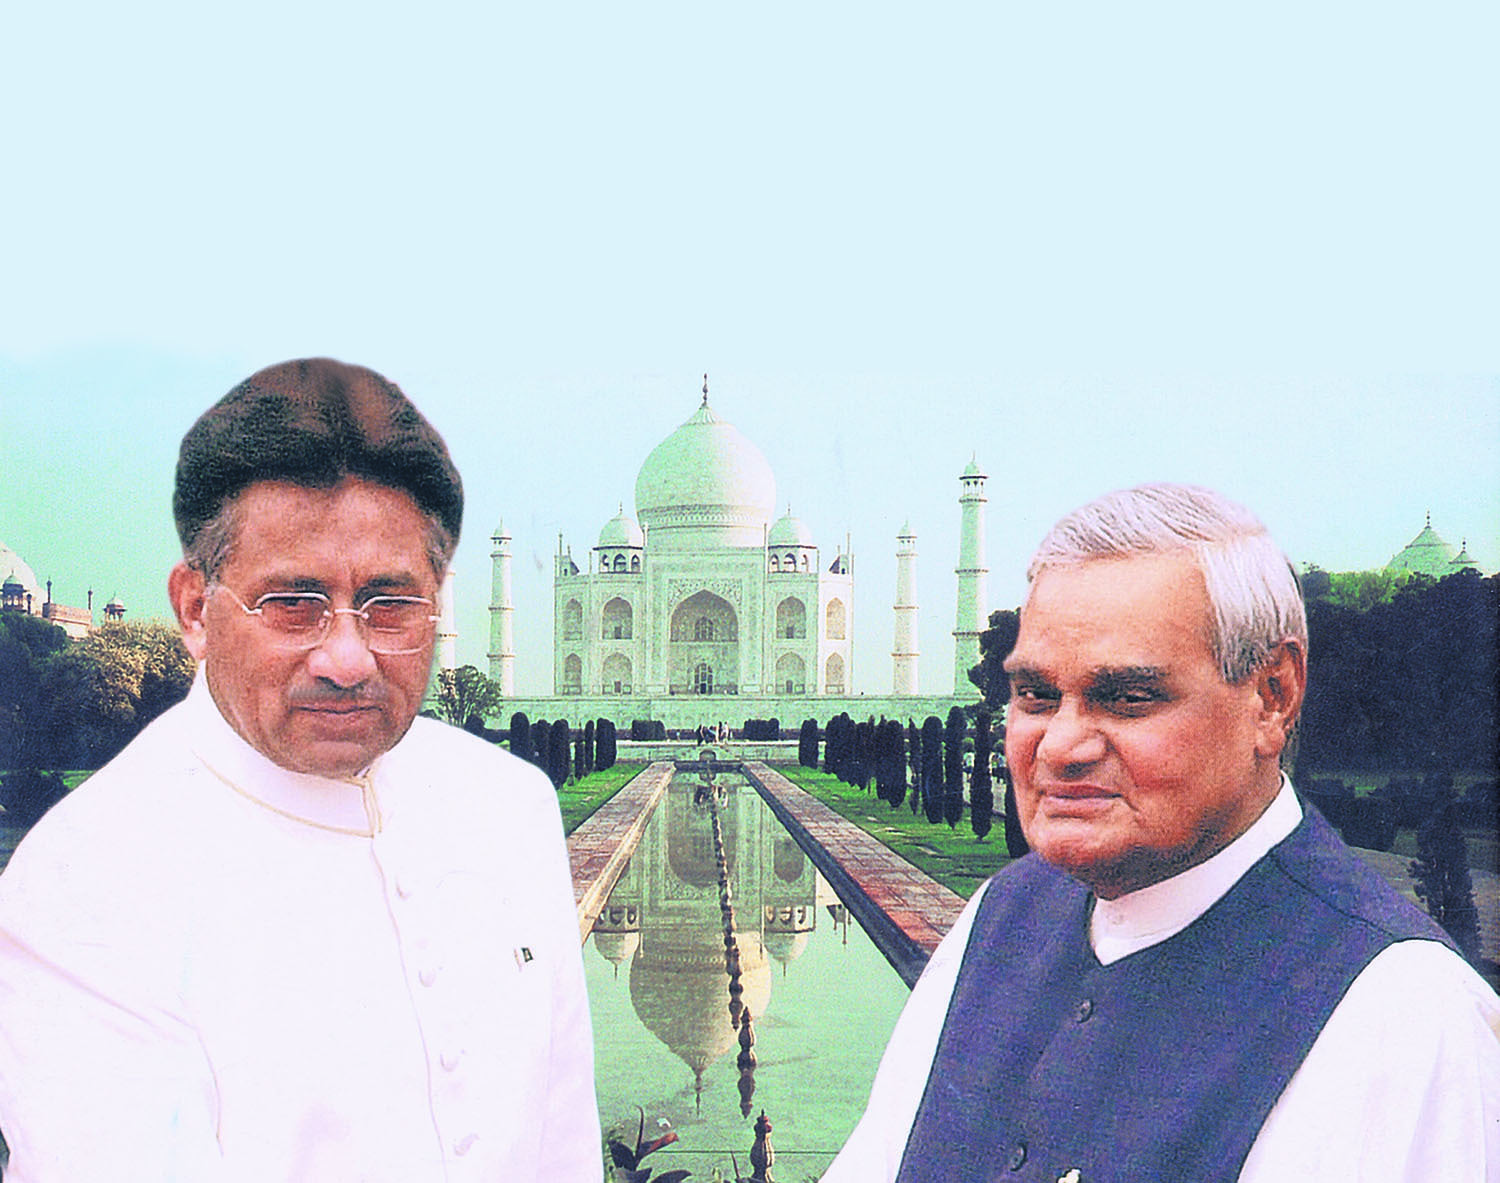 Pervez Musharraf was able to steal the show interacting with the Indian media during the Agra Summit in July 2001, but that was also one of the reasons behind the deadlock he ran into with Indian prime minister Atal Behari Vajpayee (right).